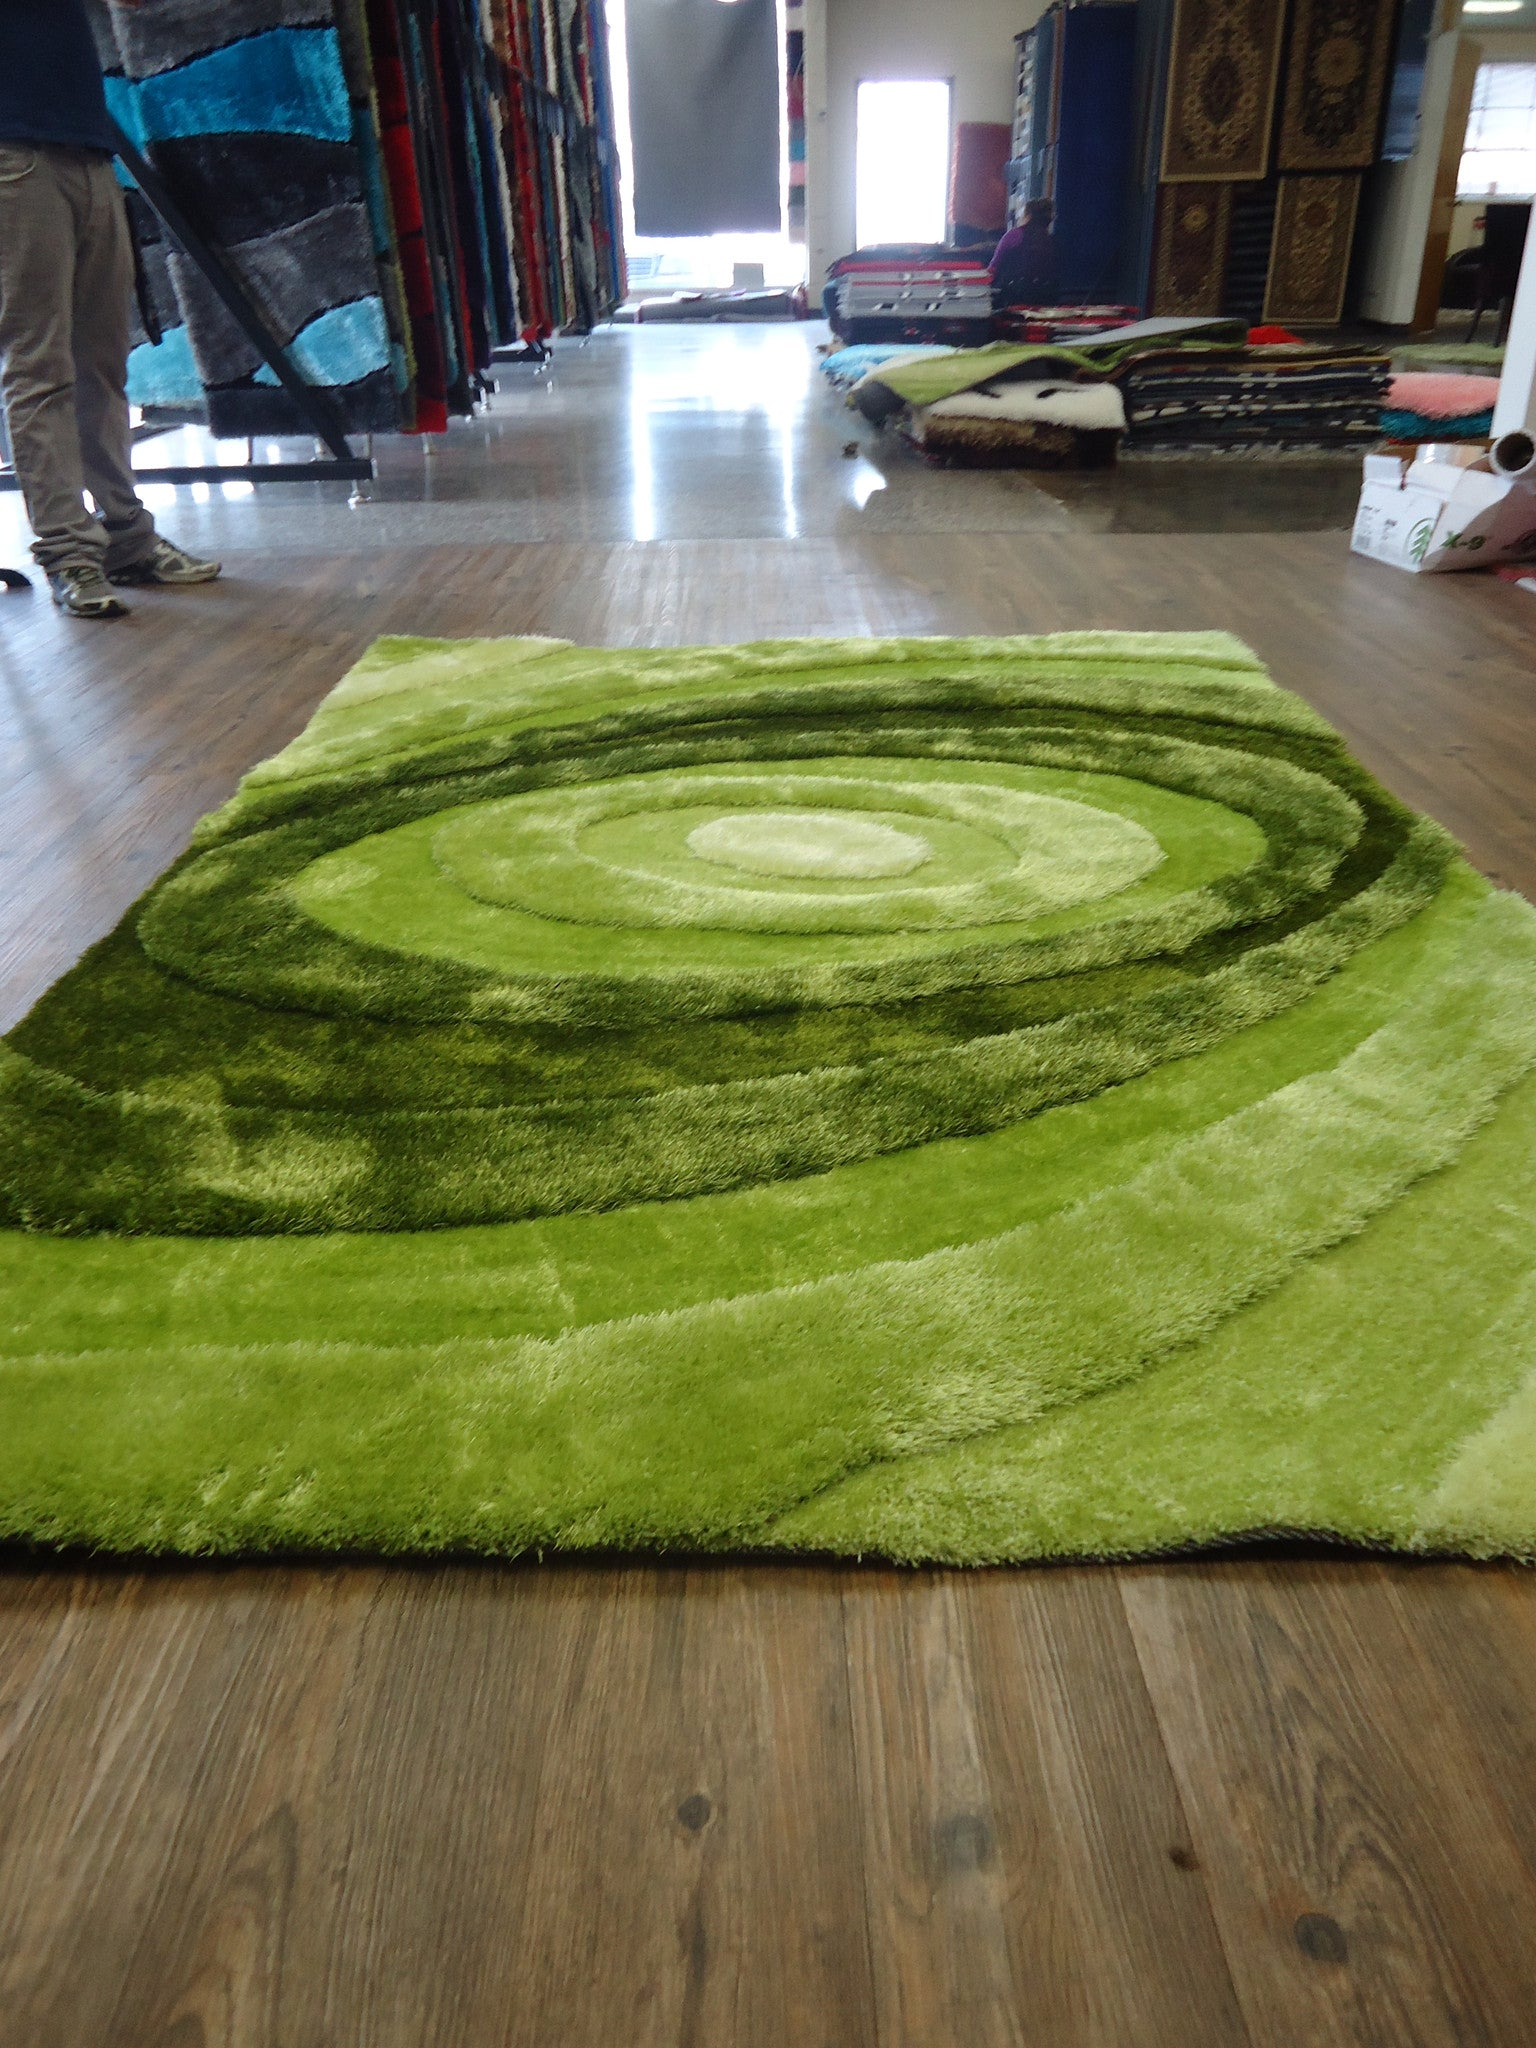 Handmade Vibrant Green 3 Dimensional Shag Area Rug With